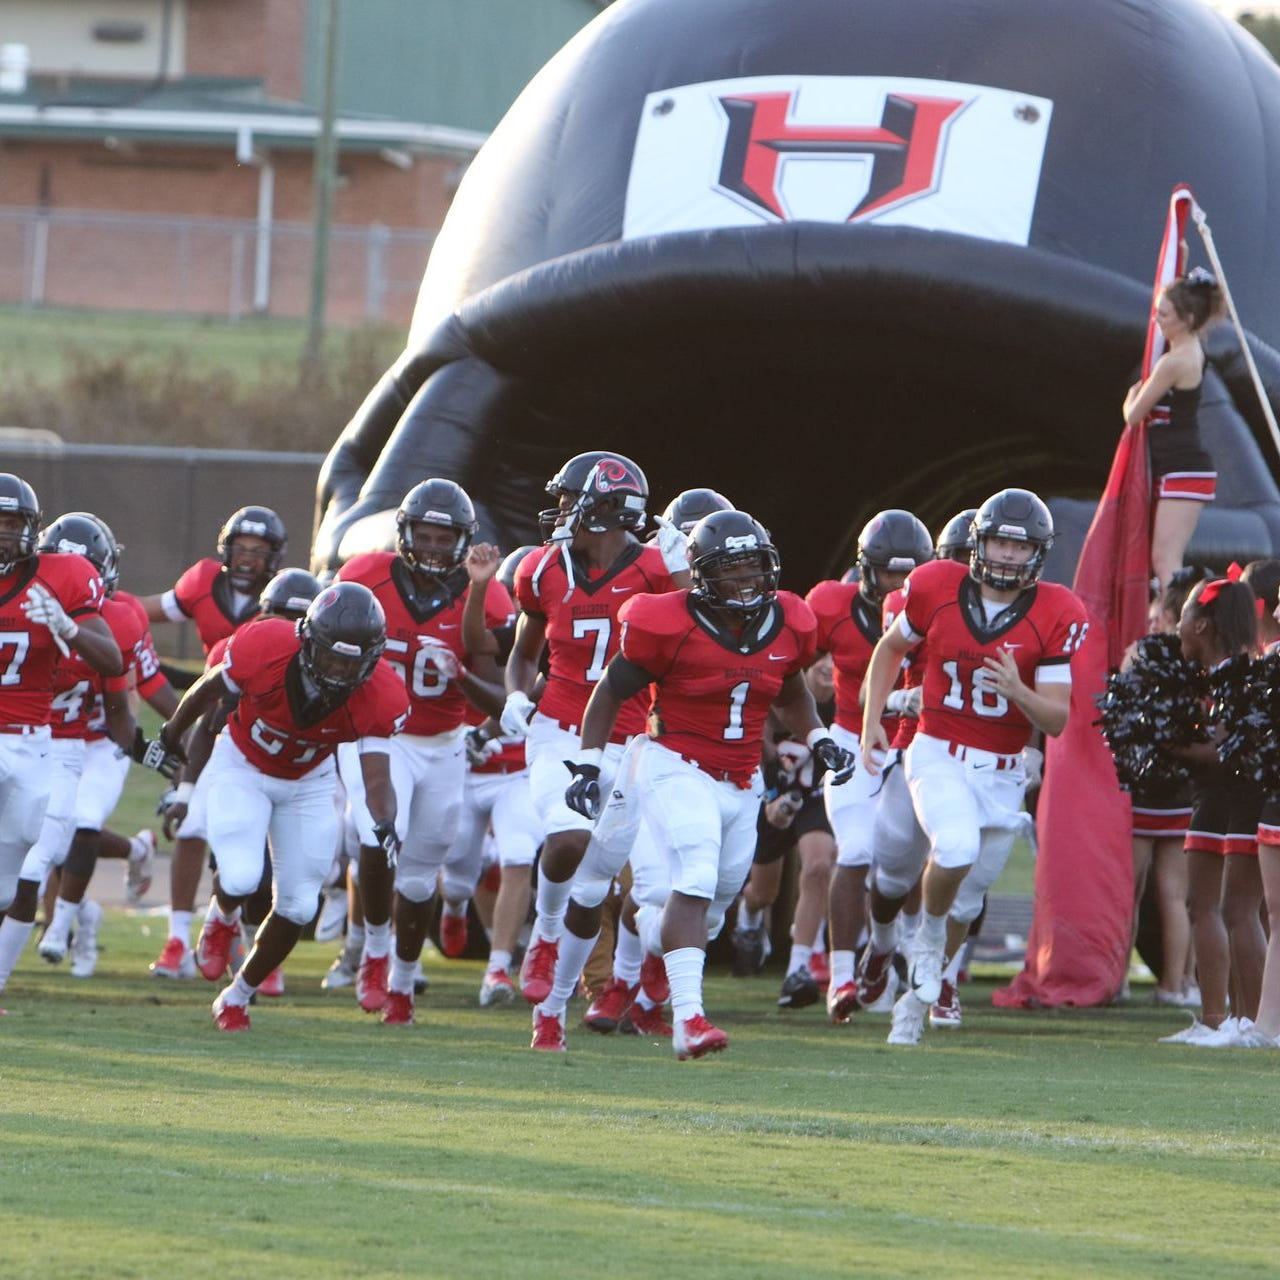 The Hillcrest Rams, ranked eighth in Class AAAAA, will host Spartanburg Friday in a Region 2-AAAAA game.